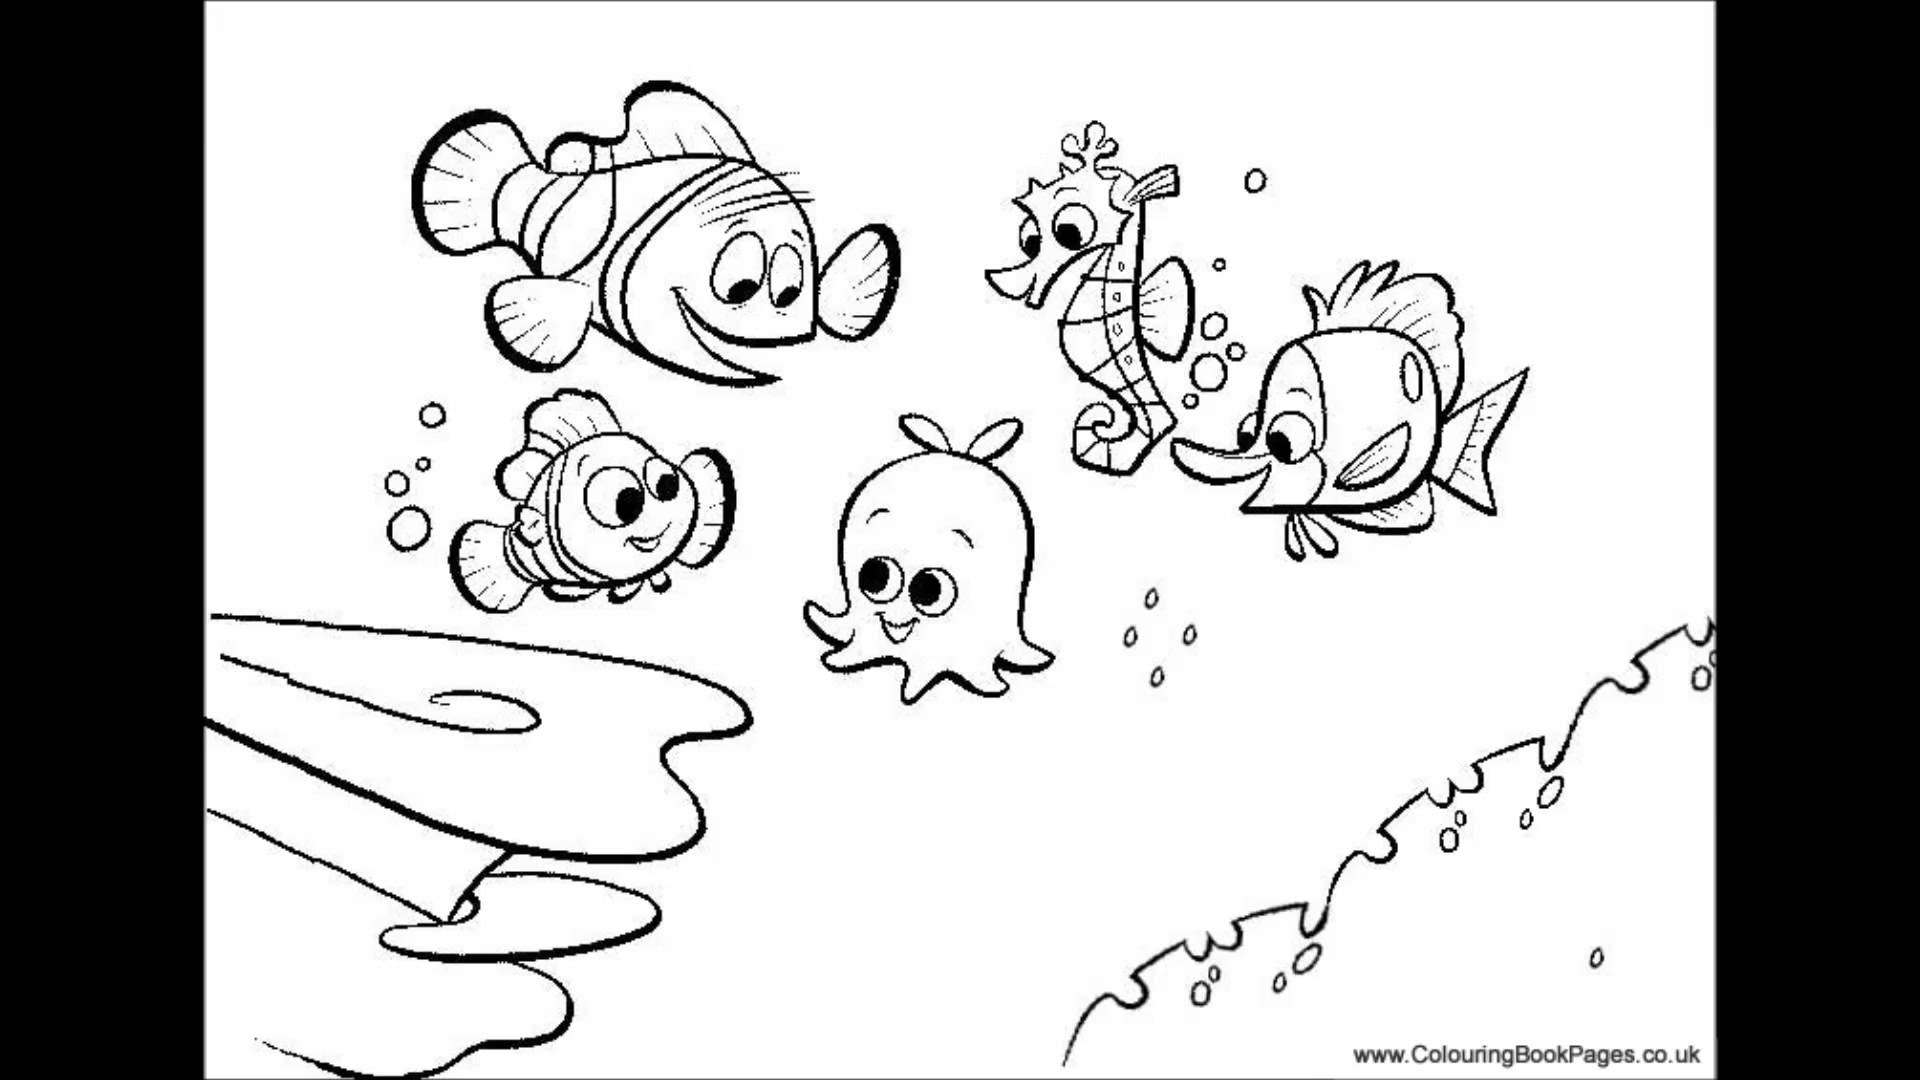 1920x1080 Revealing Finding Nemo Coloring Pages Pdf Colo